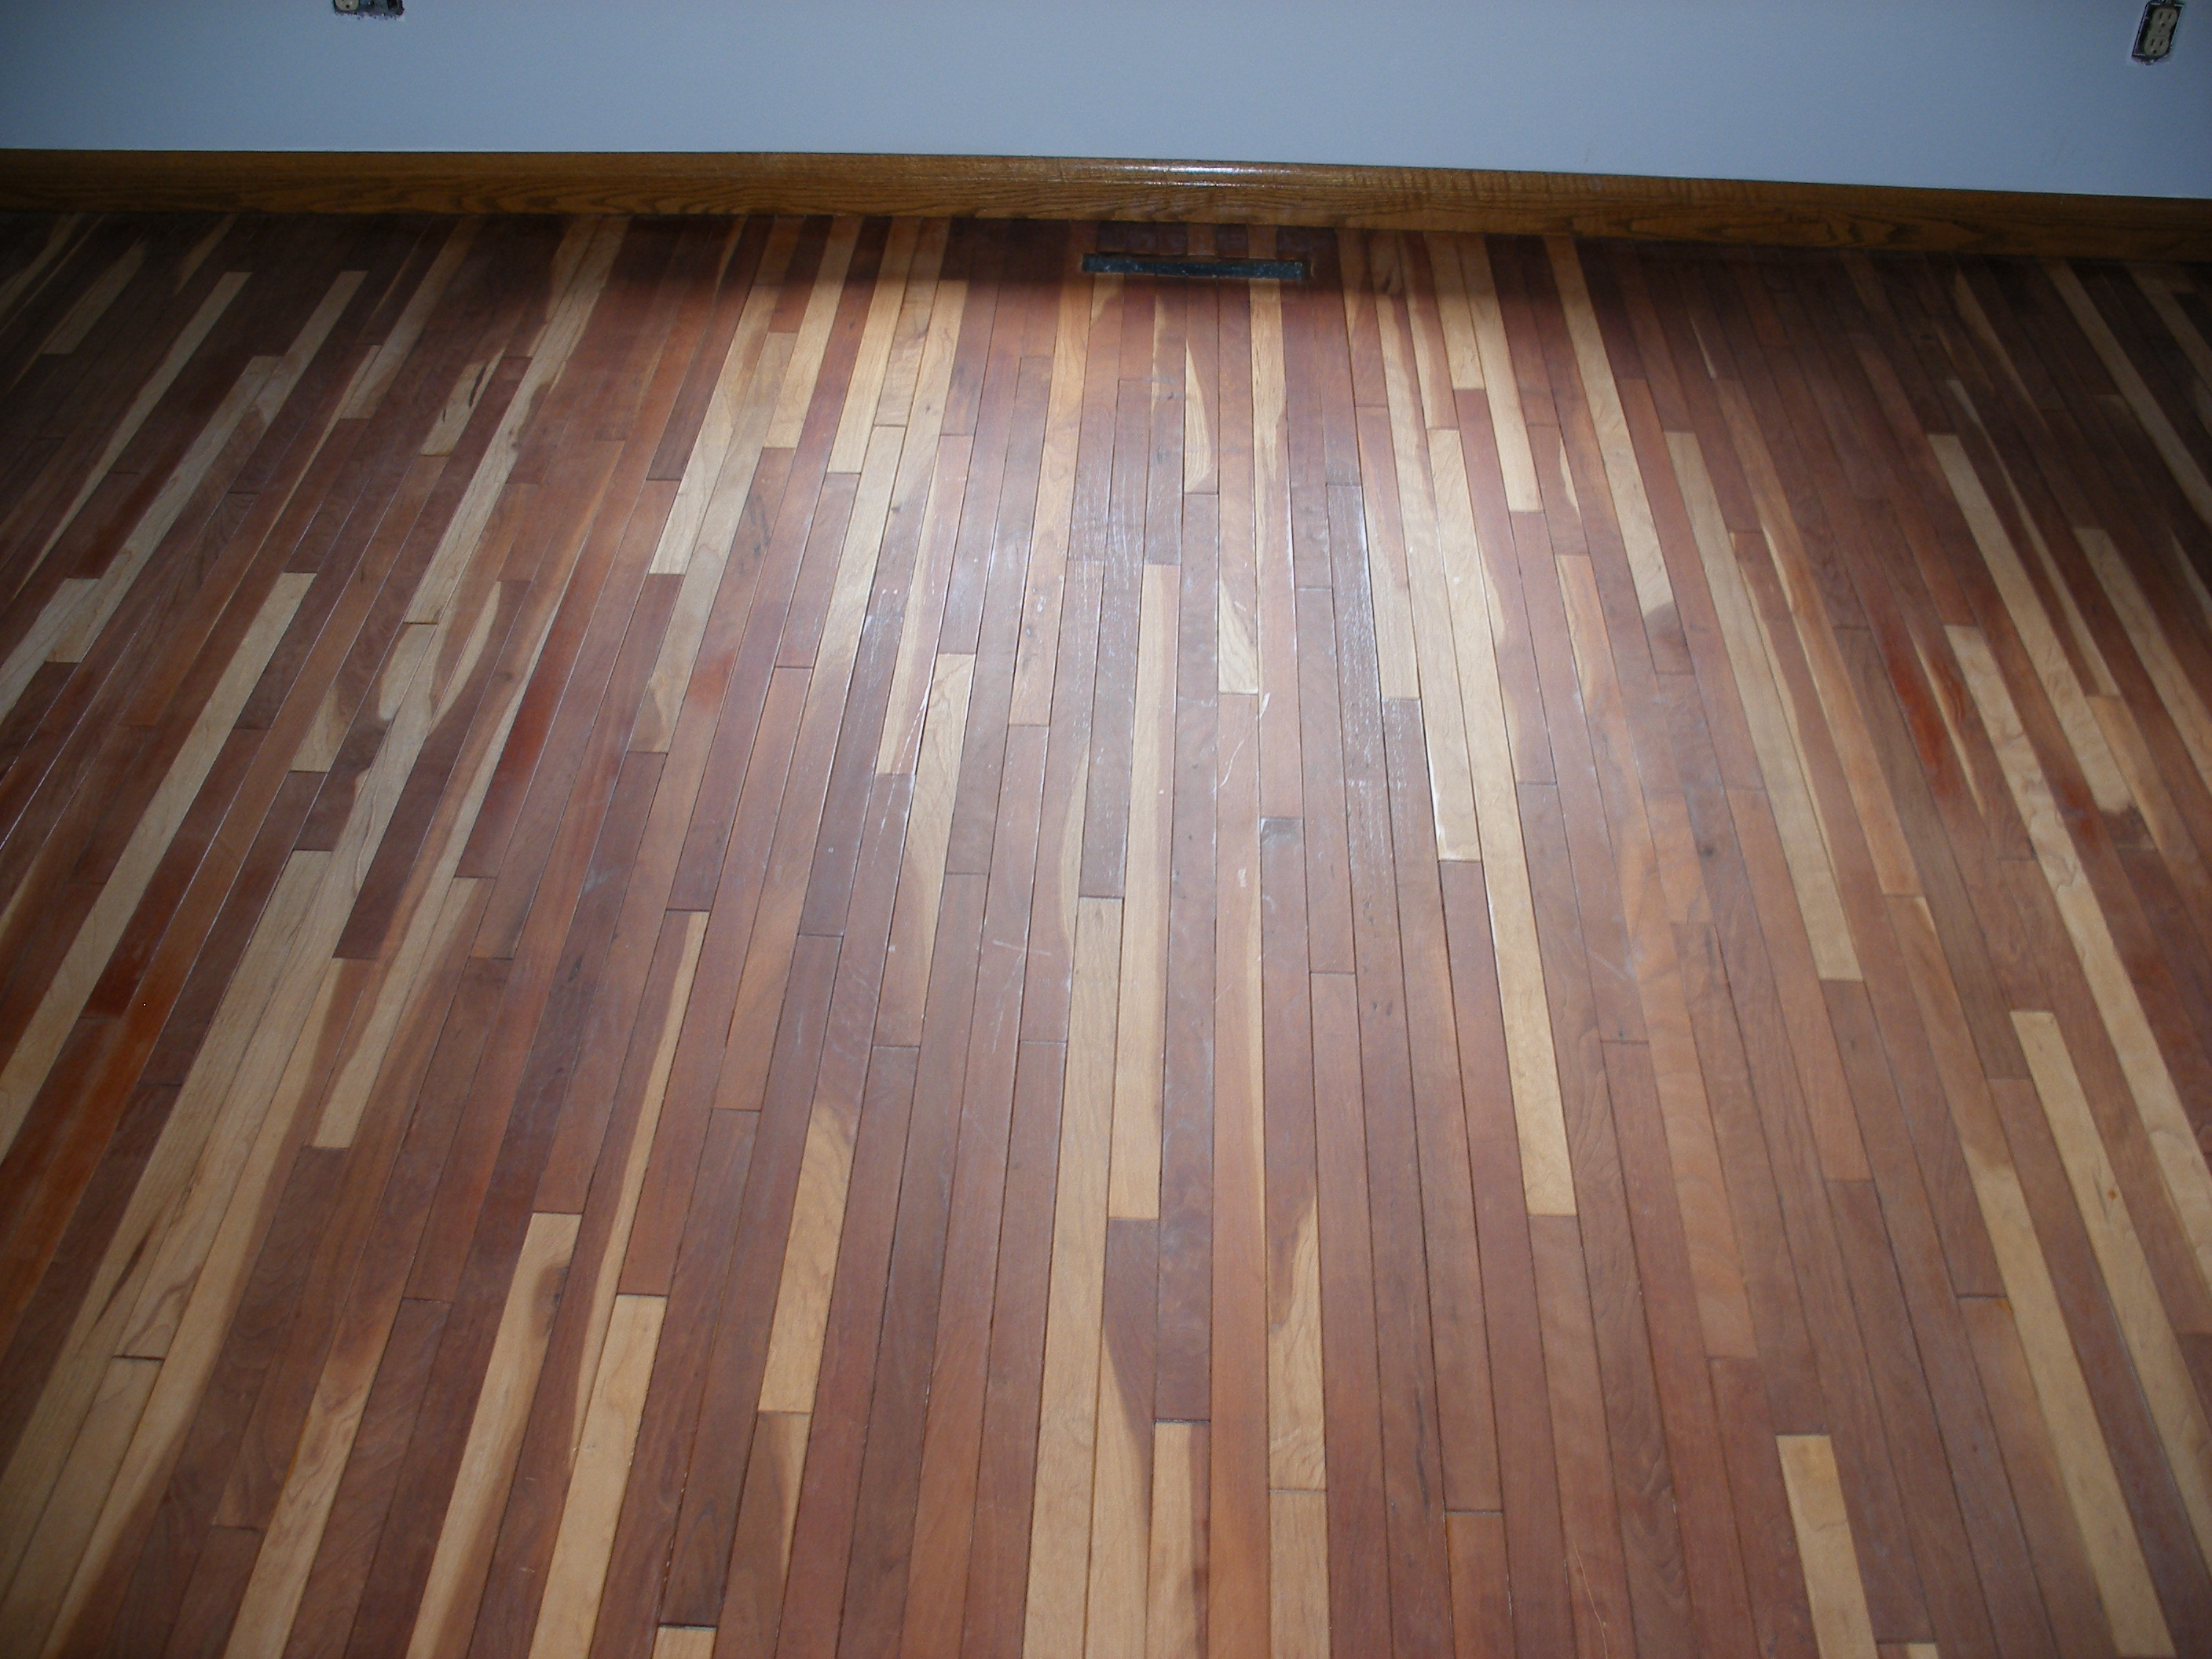 hardwood floor refinishing haddonfield nj of diy refinish hardwood floors adventures in staining my red oak for diy refinish hardwood floors no sand wood floor refinishing in northwest indiana hardwood floors